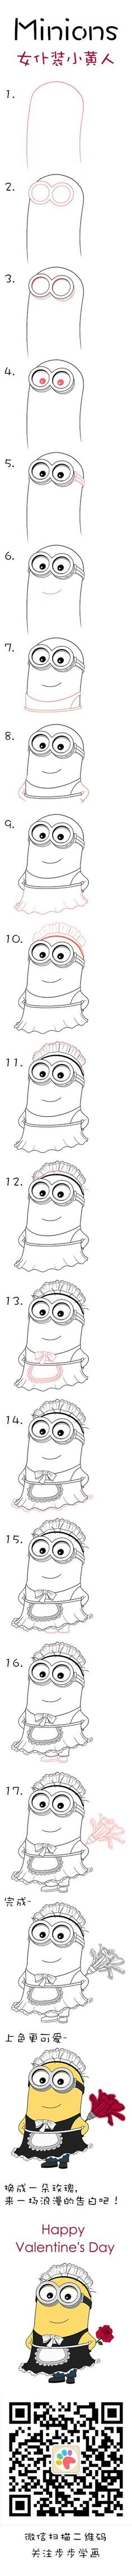 cleaning minion